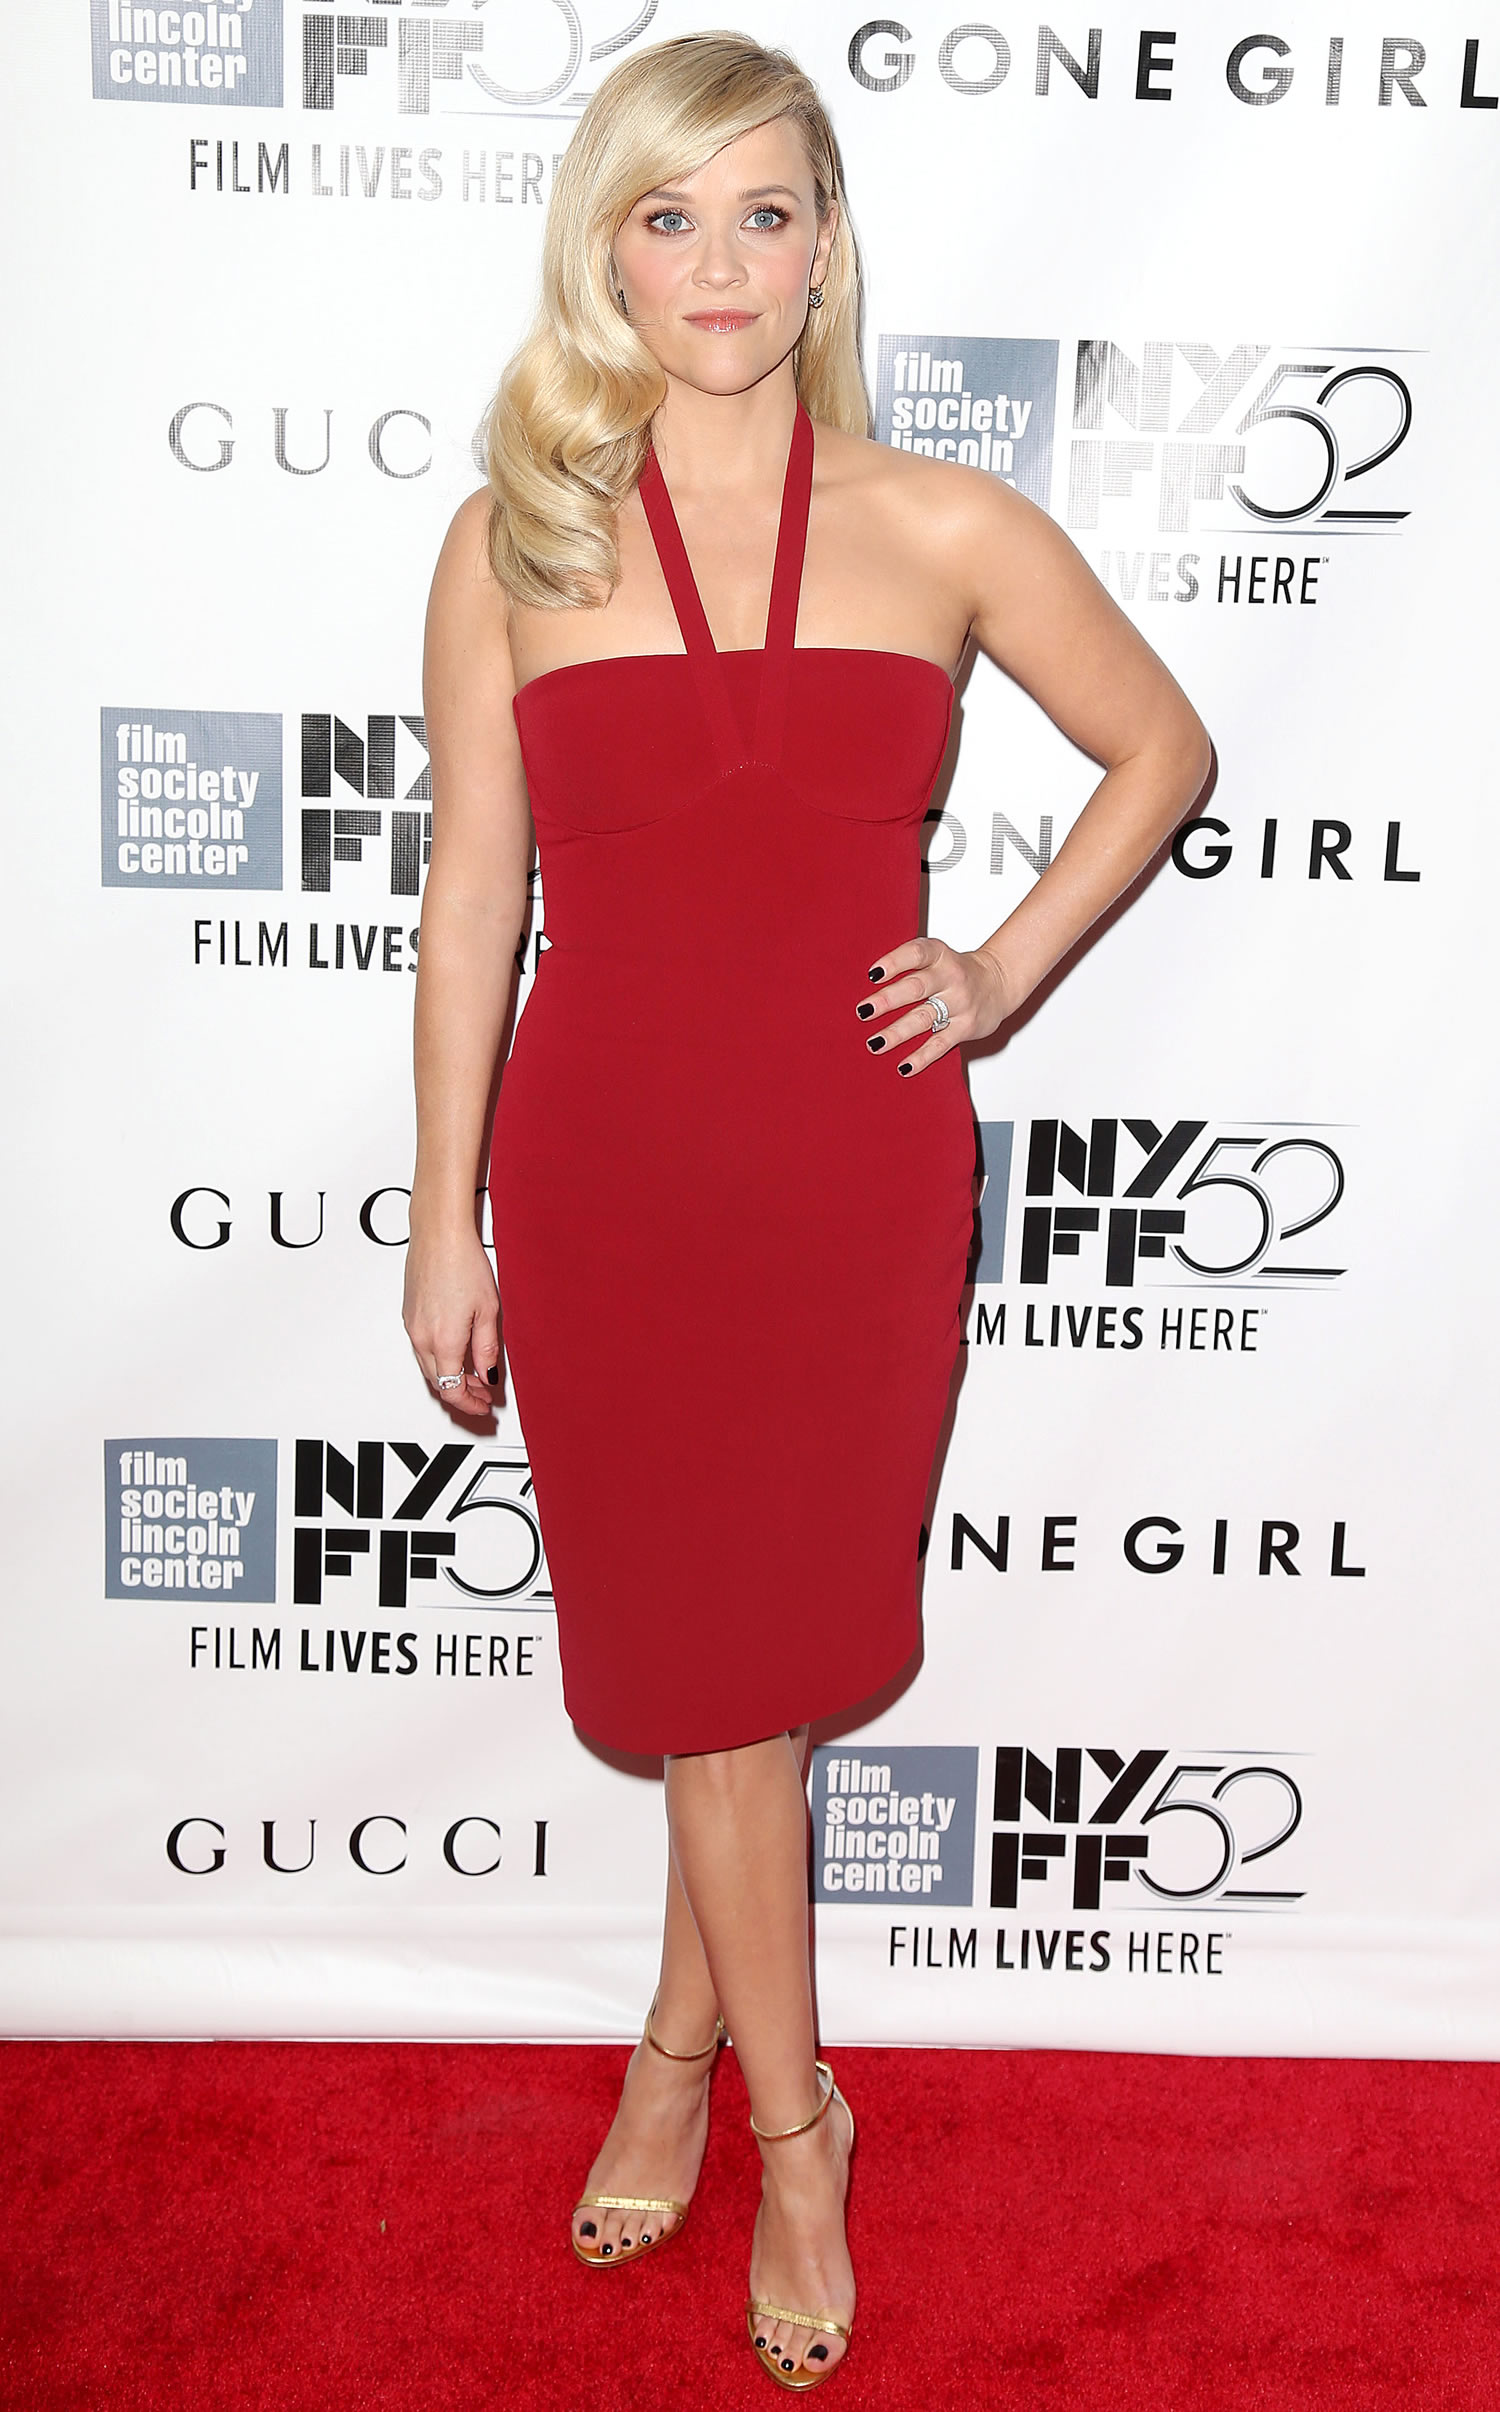 reese-witherspoon-gone-girl-gremiere-2014-new-york-film-festival-2